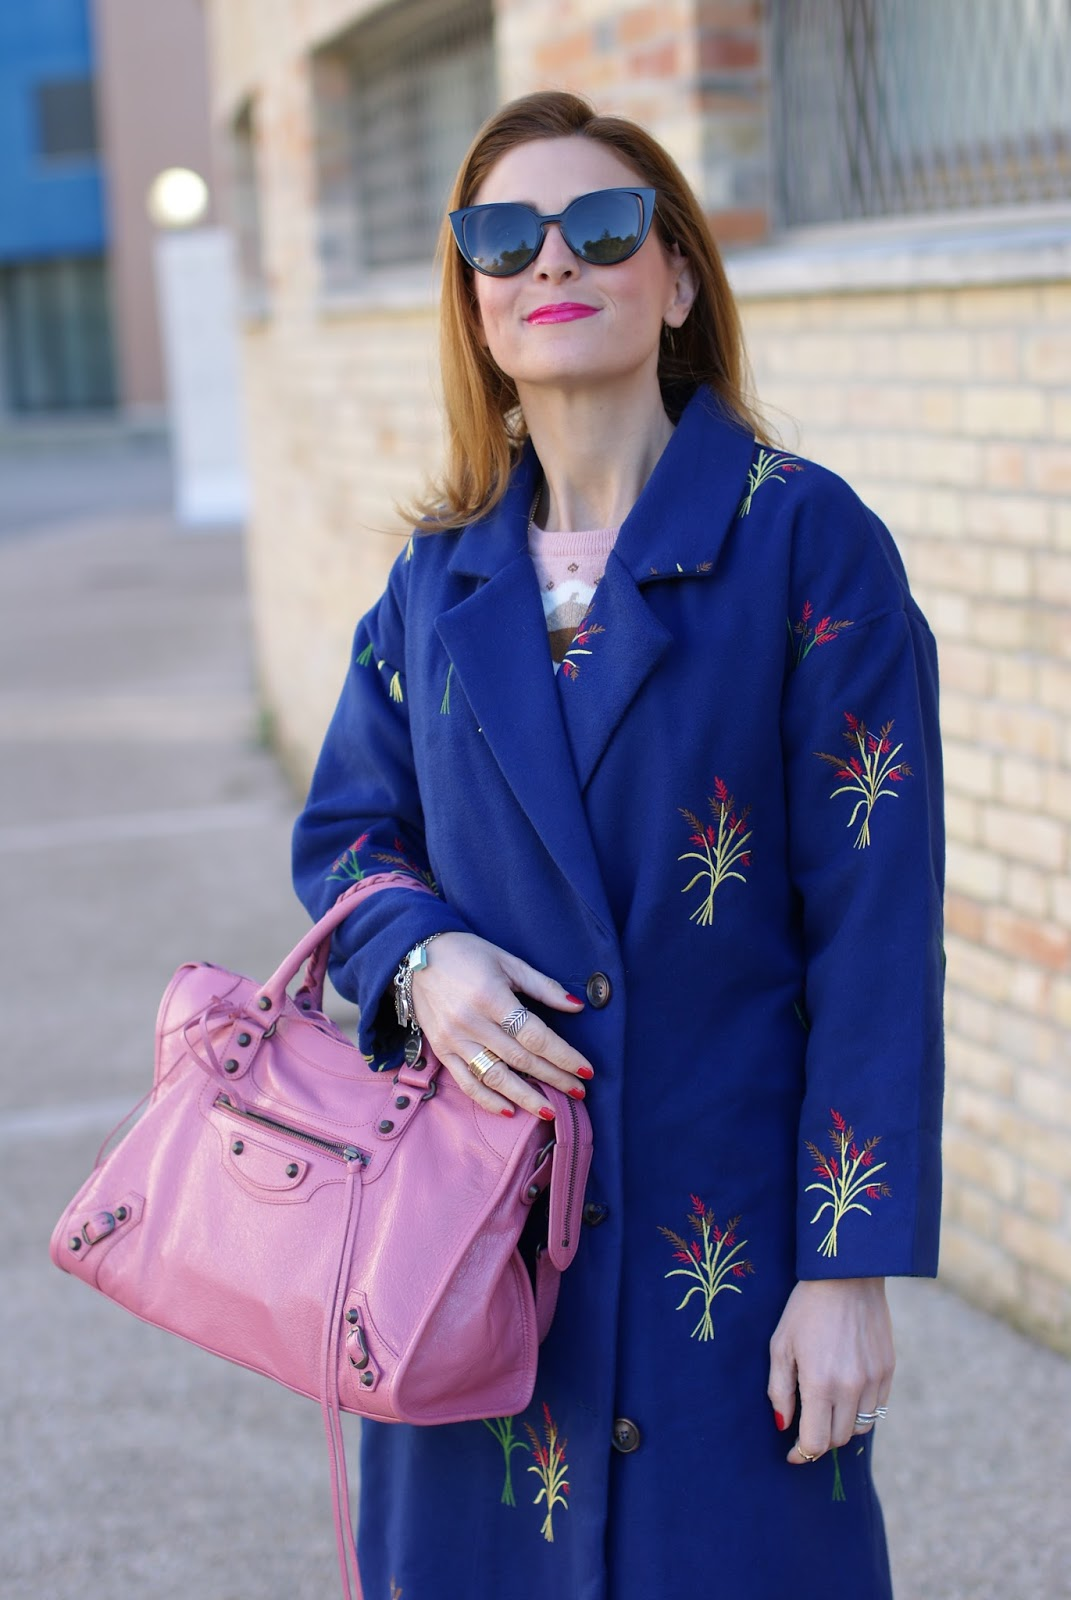 Balenciaga Rose Hortensia bag, Fendi sunglasses and Zaful coat on Fashion and Cookies fashion blog, fashion blogger style